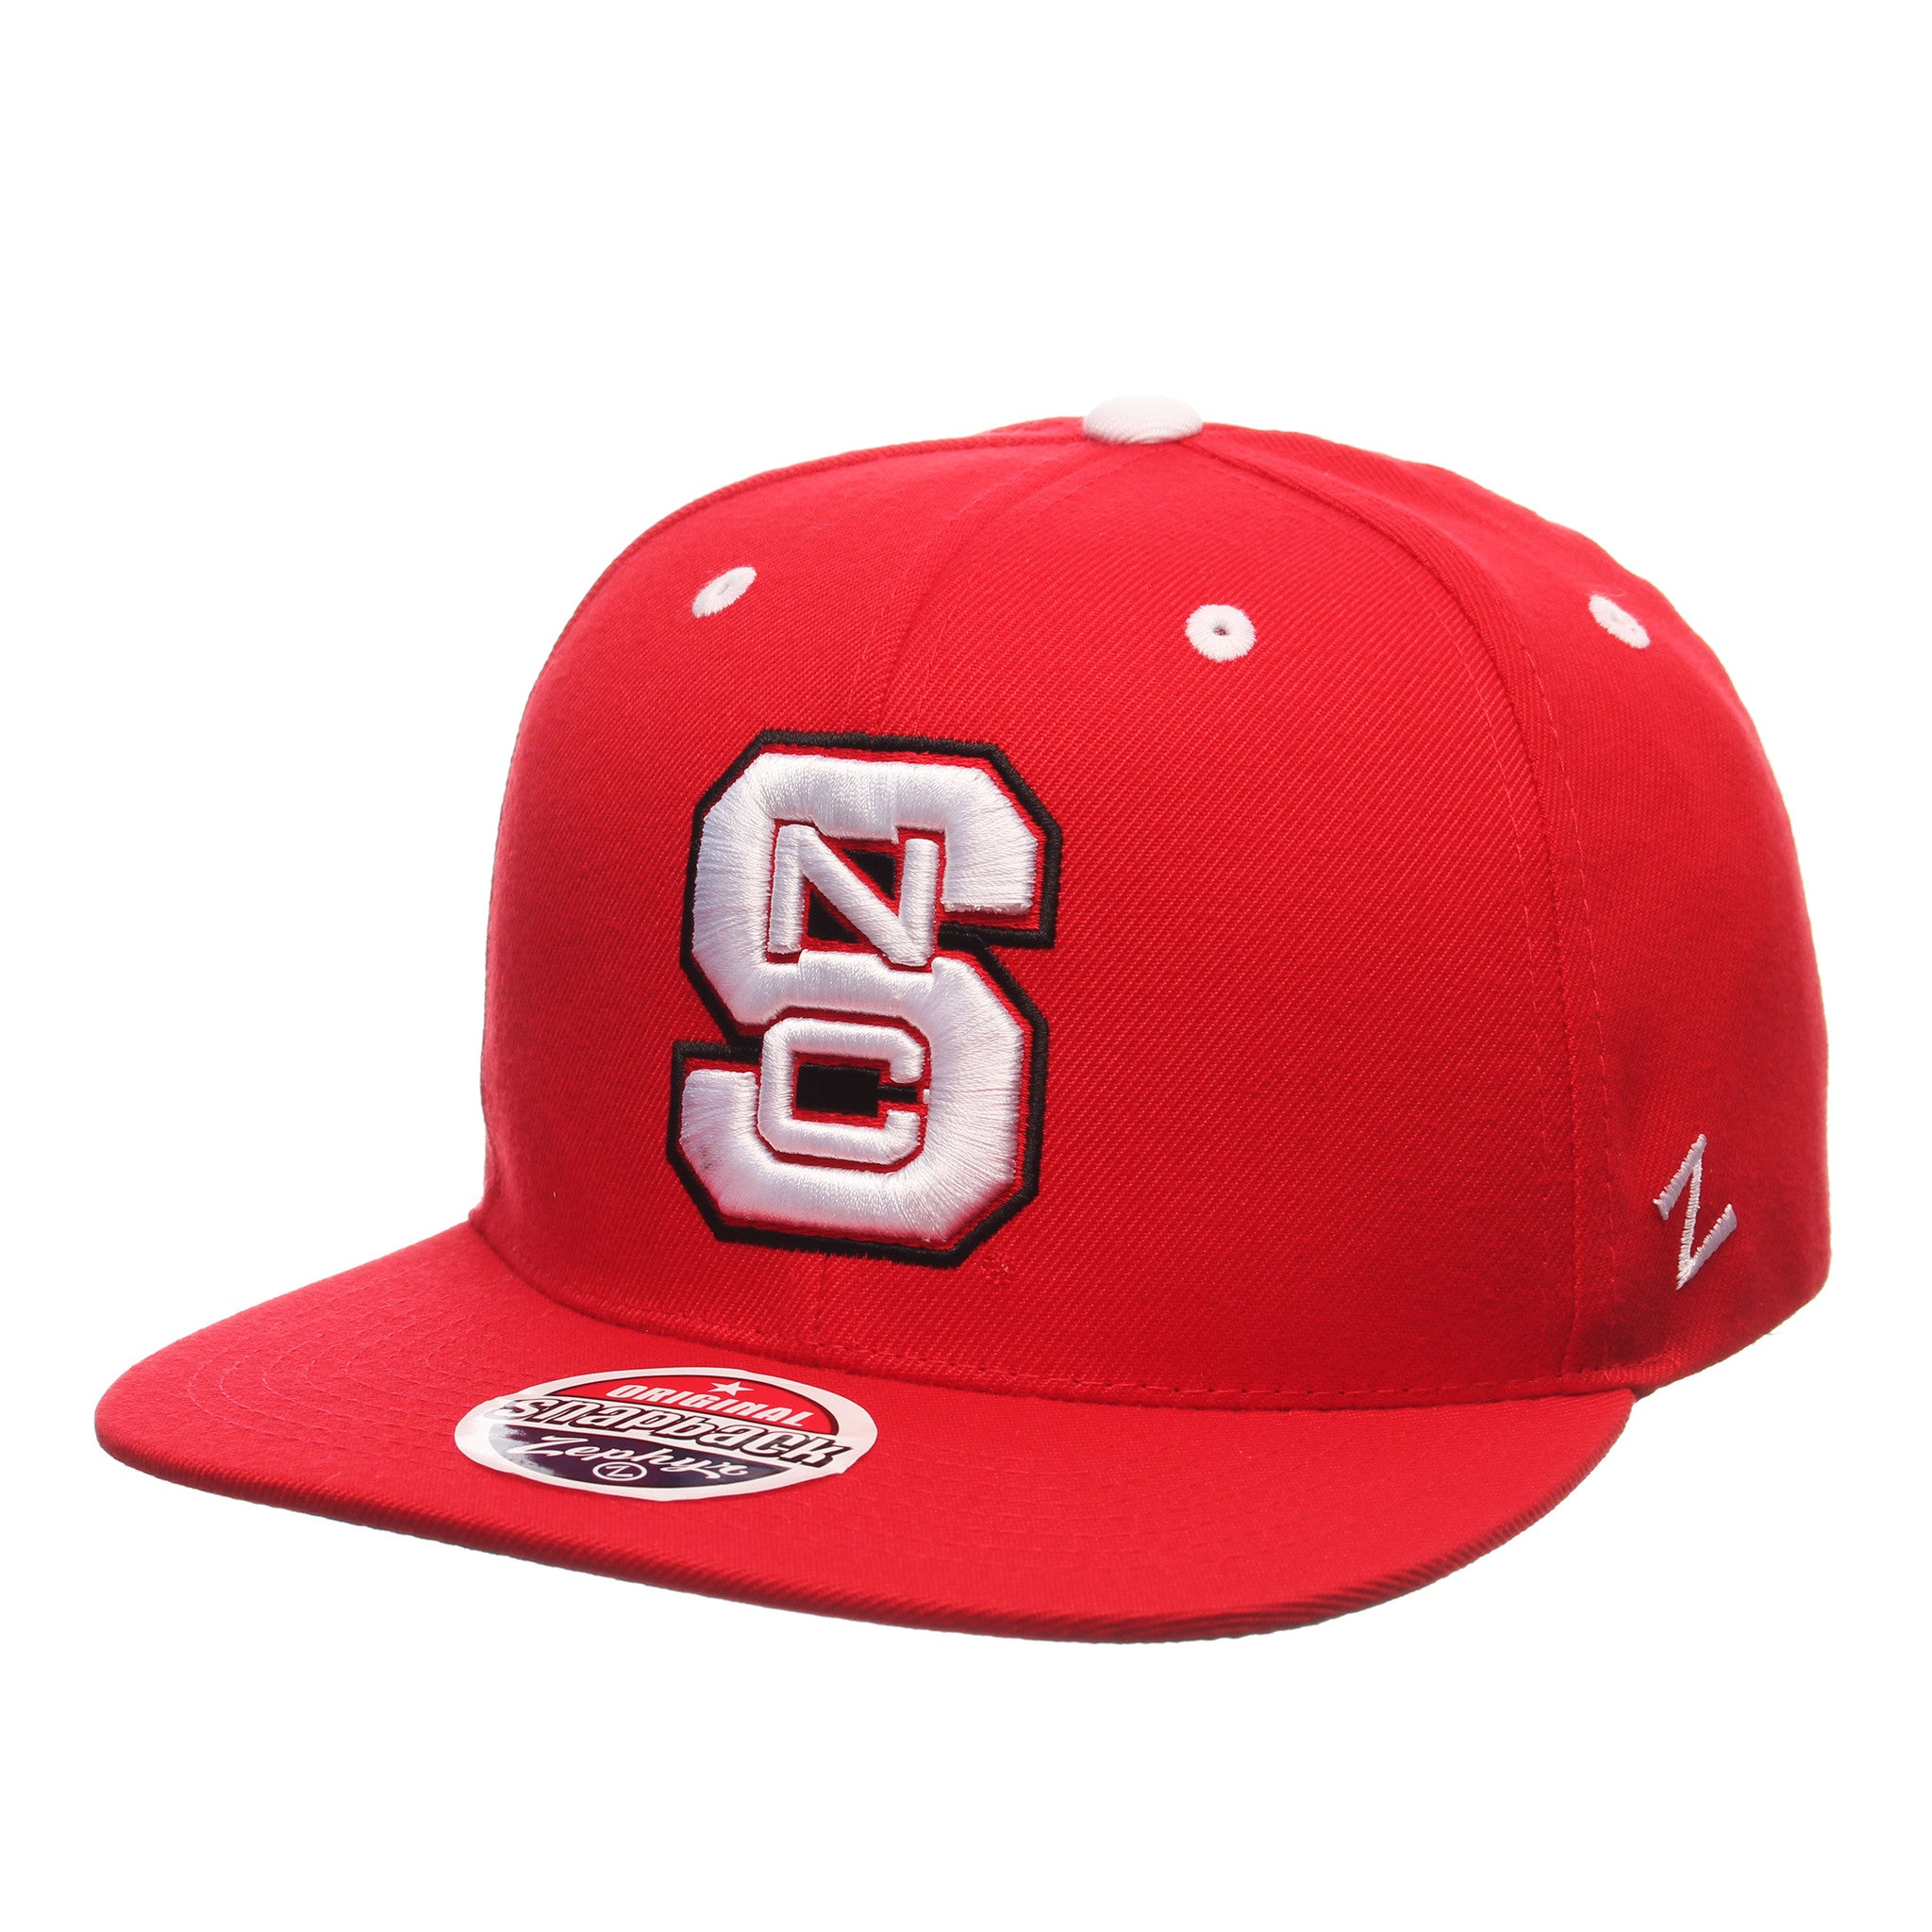 North Carolina State University Z11 32/5 (High) (Snc) Scarlet Zwool Adjustable hats by Zephyr